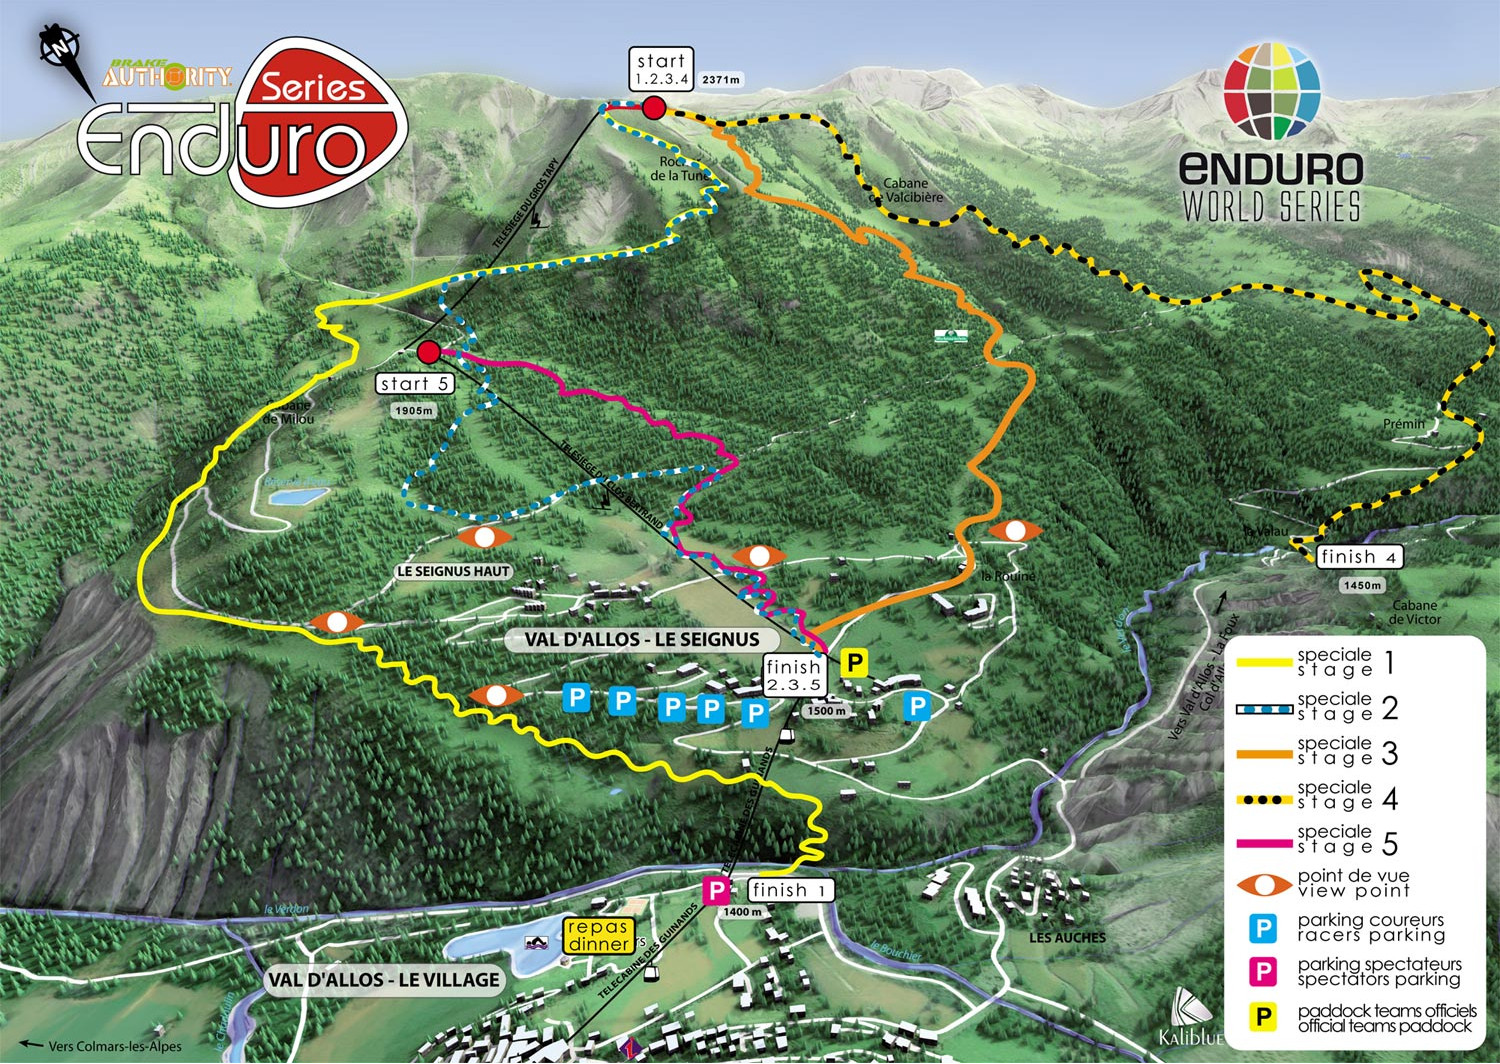 30,000 Feet of Descending - Enduro World Series Val d'Allos Course Map 2013 - 2013 Enduro World Series France Photo Gallery - Mountain Biking Pictures - Vital MTB